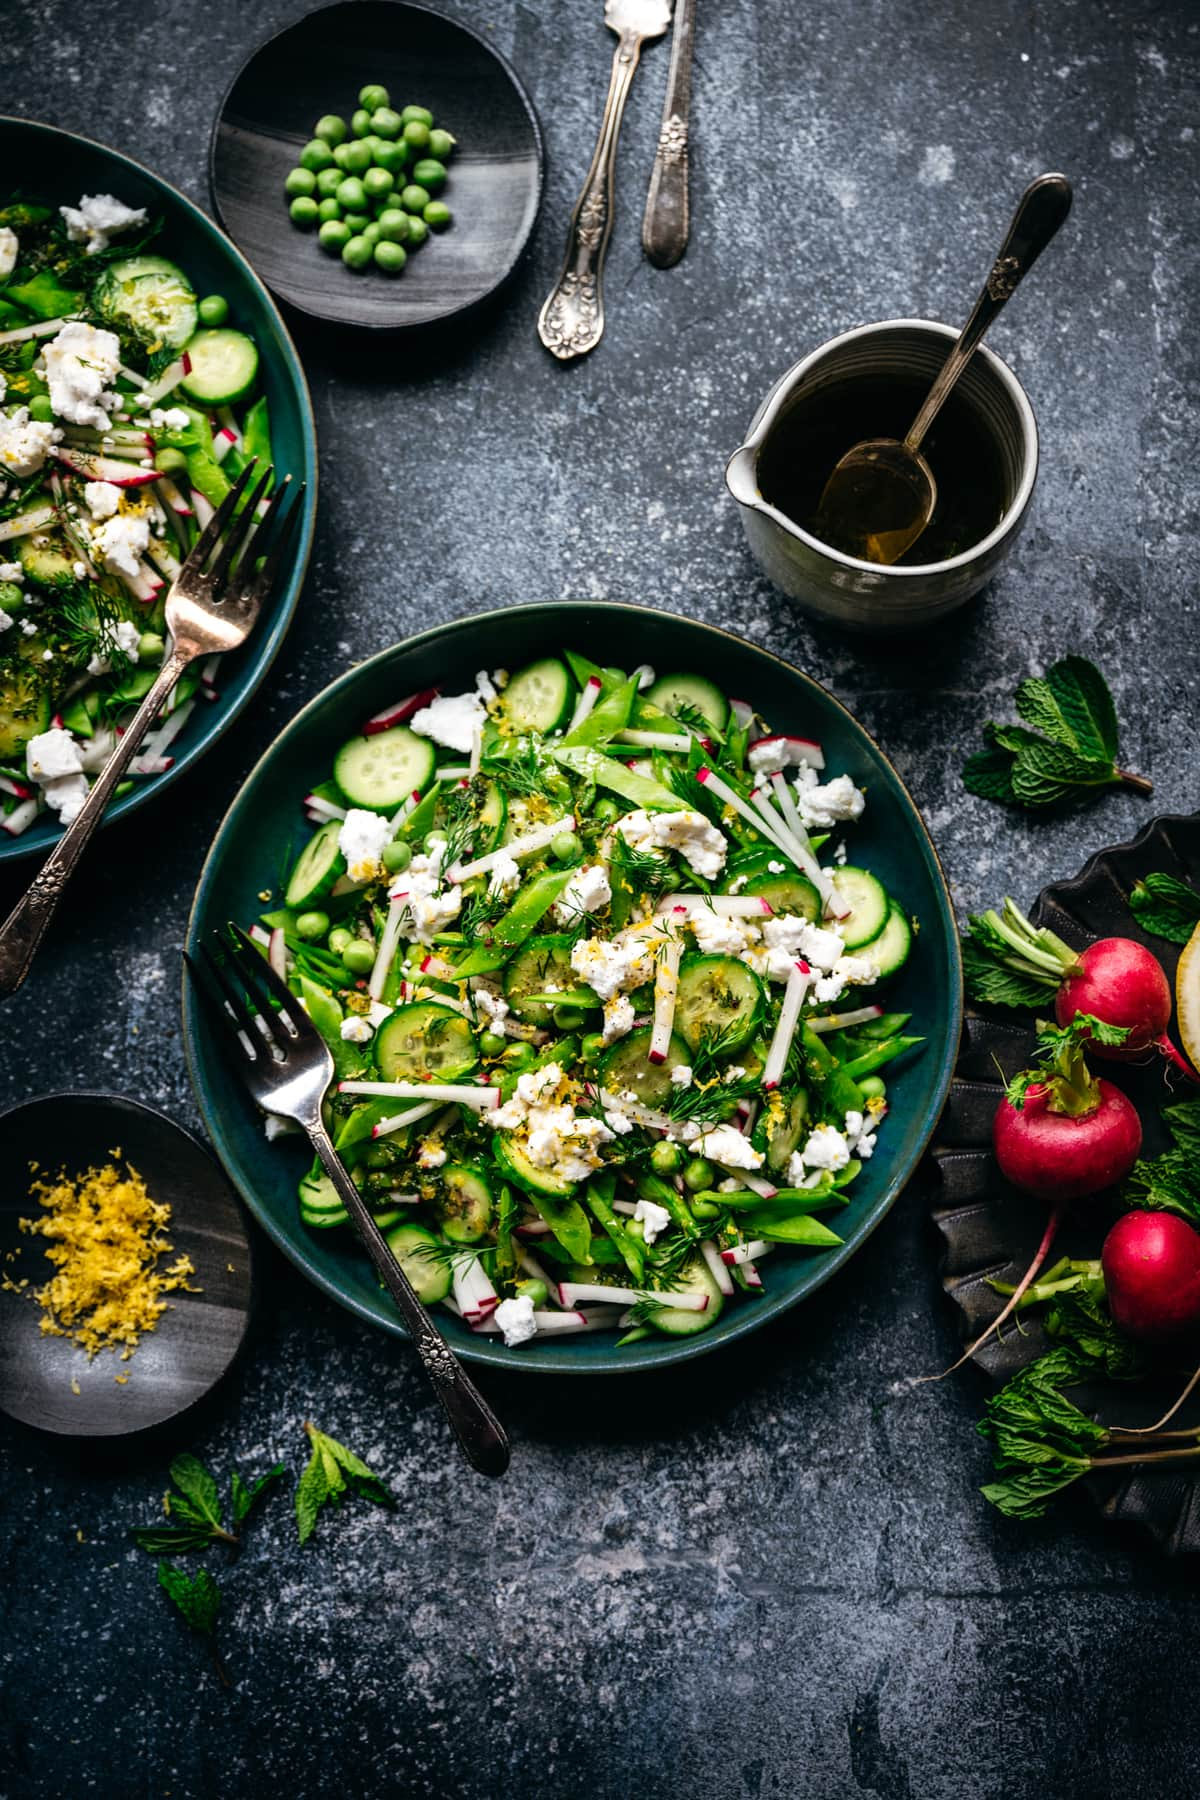 Overhead view of snow pea salad with radishes, cucumber and vegan feta in blue bowl